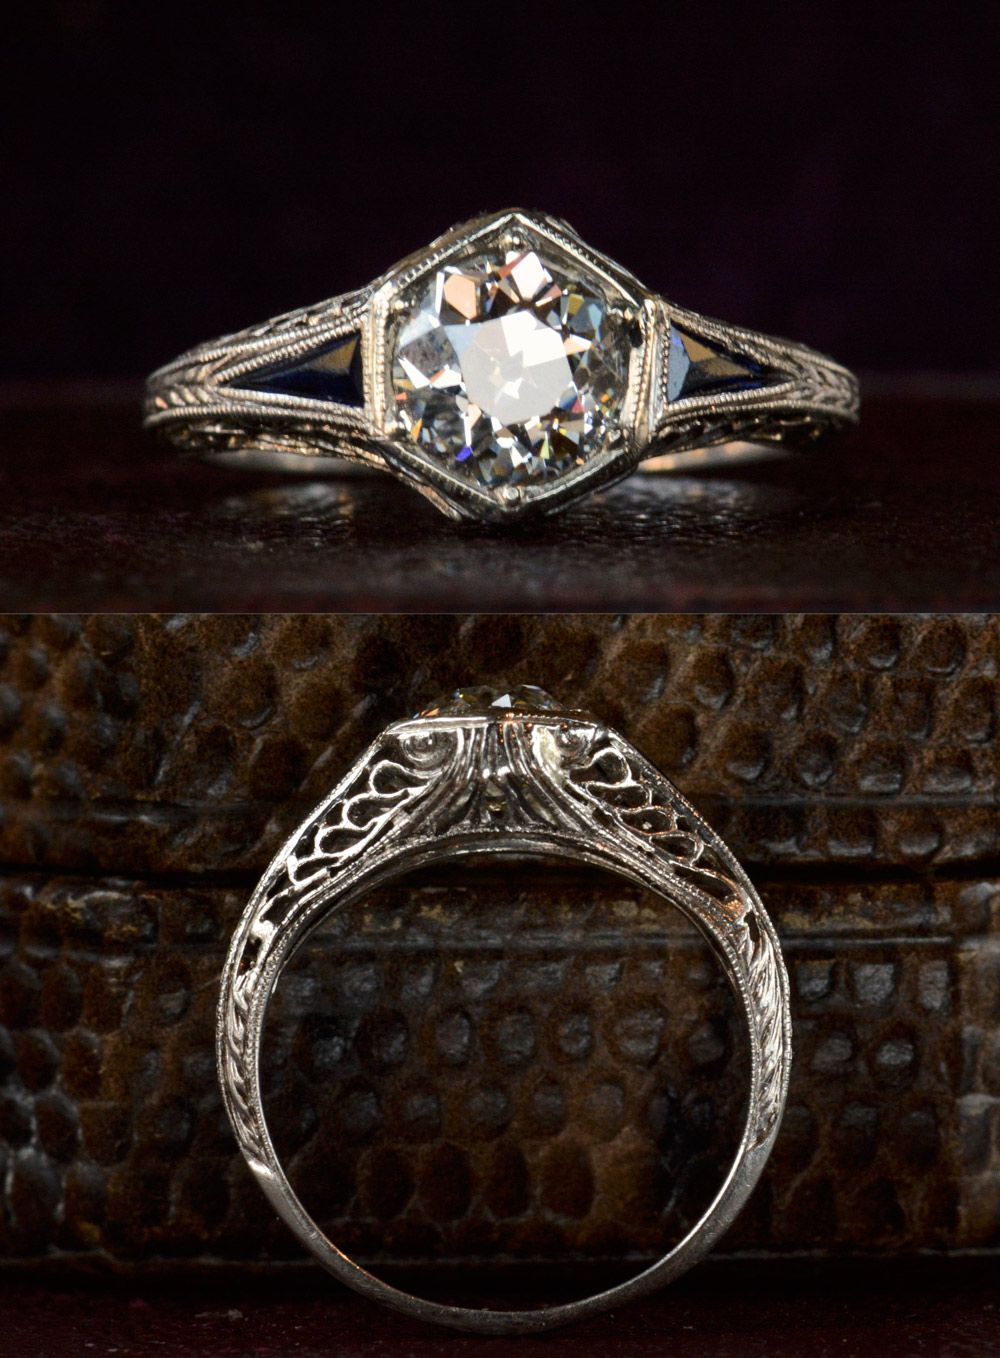 wedding rings online A vintage ring Art Deco Hexagonal Filigree Engagement Ring Old European Cut Diamond in the online shop